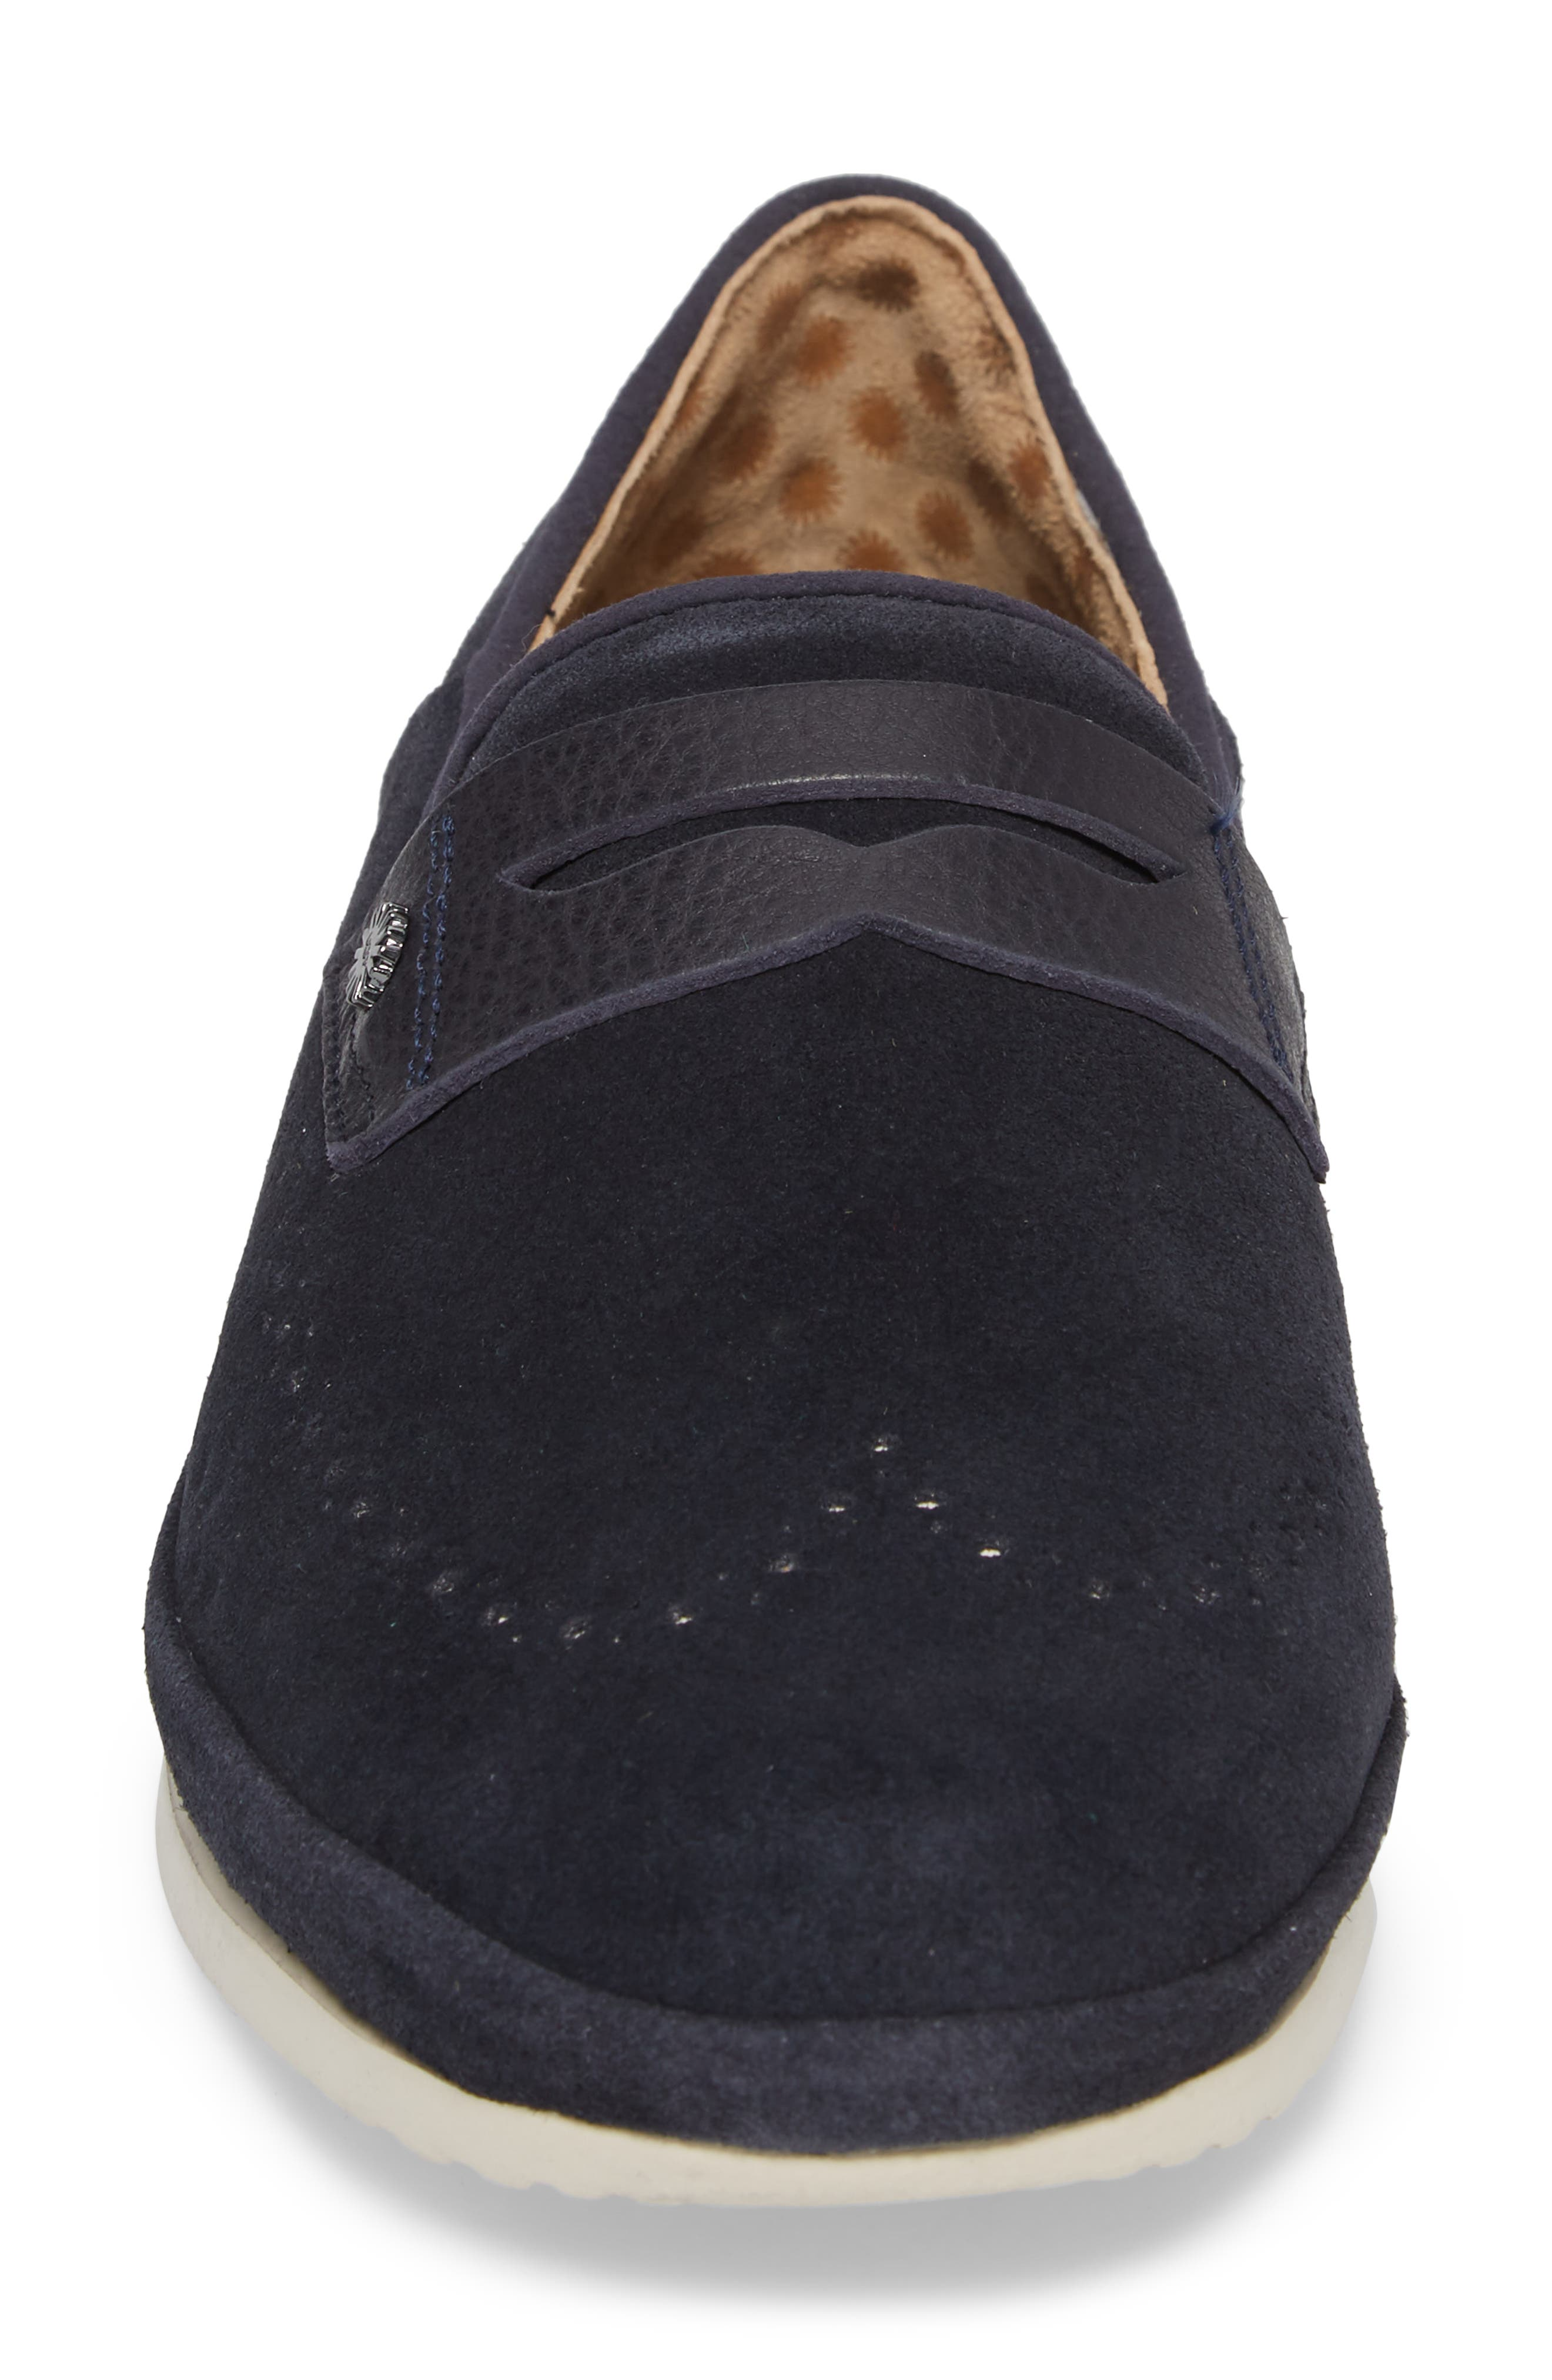 Cali Collapsible Wingtip Penny Loafer,                             Alternate thumbnail 4, color,                             Navy Leather